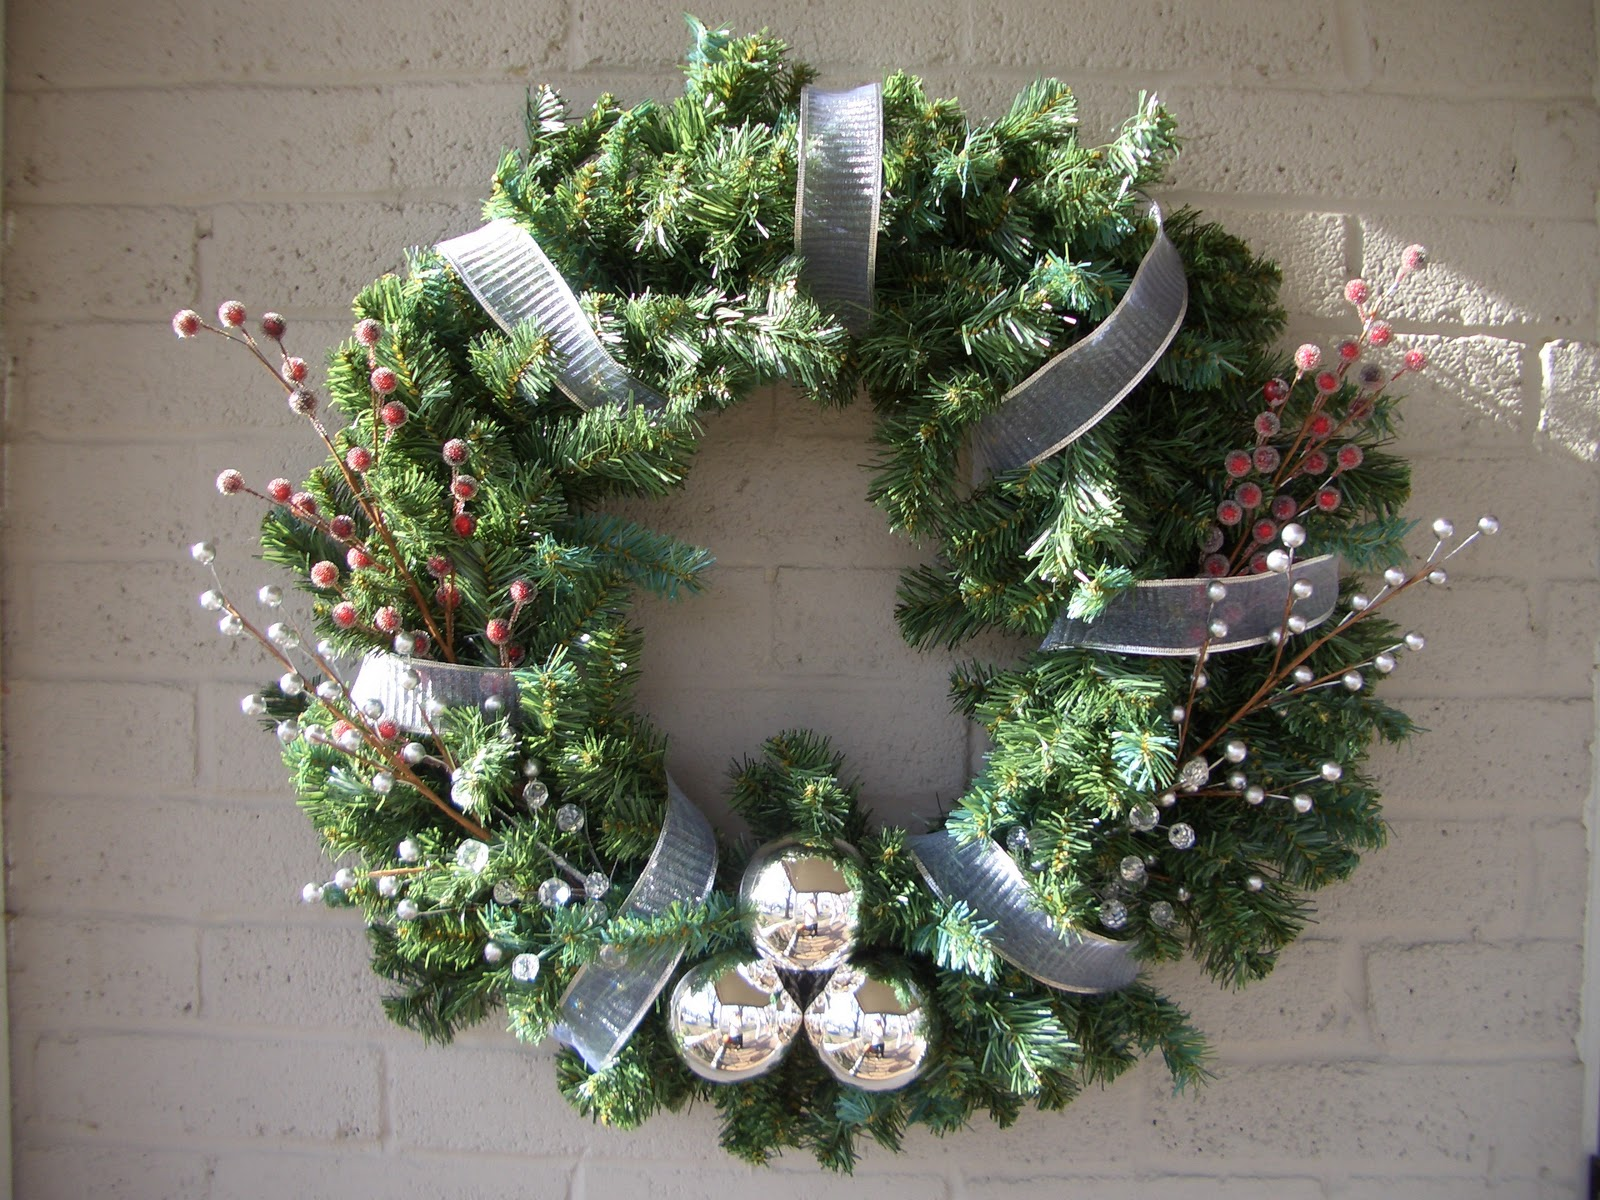 Cool home creations christmas decor 2010 greenery wreath - Decorations de noel a faire ...